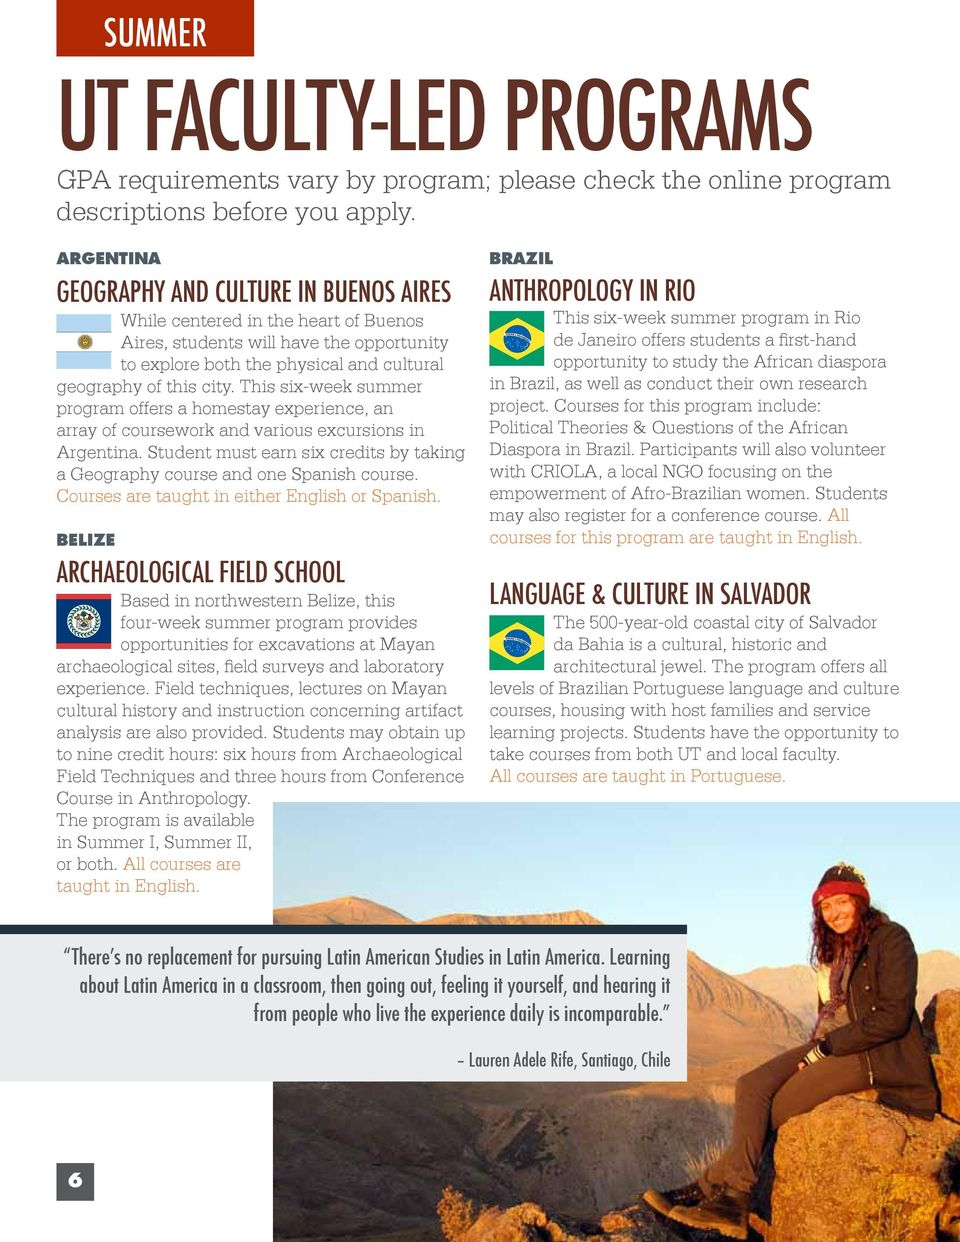 This six-week summer program offers a homestay experience, an array of coursework and various excursions in Argentina.